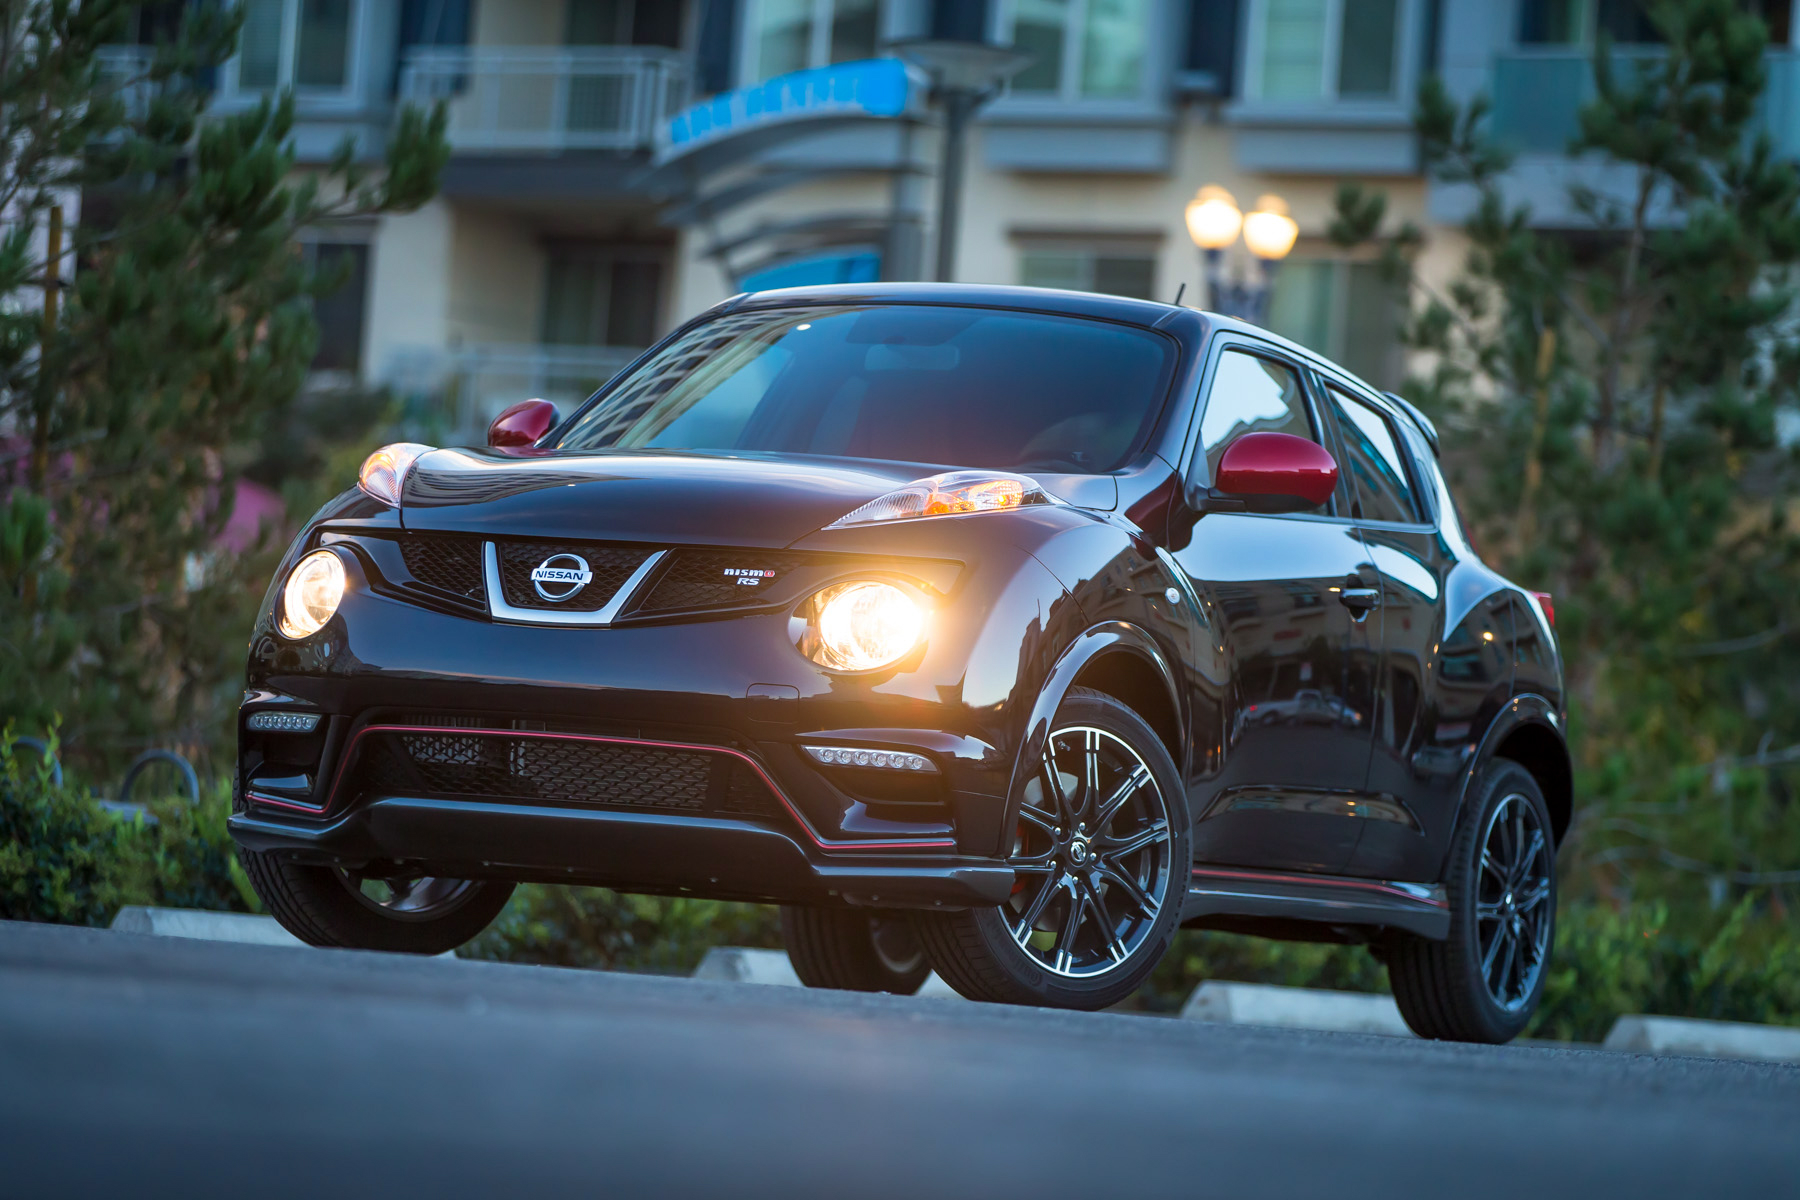 2014 Nissan Juke Nismo RS Costs as Much as a Subaru WRX ...